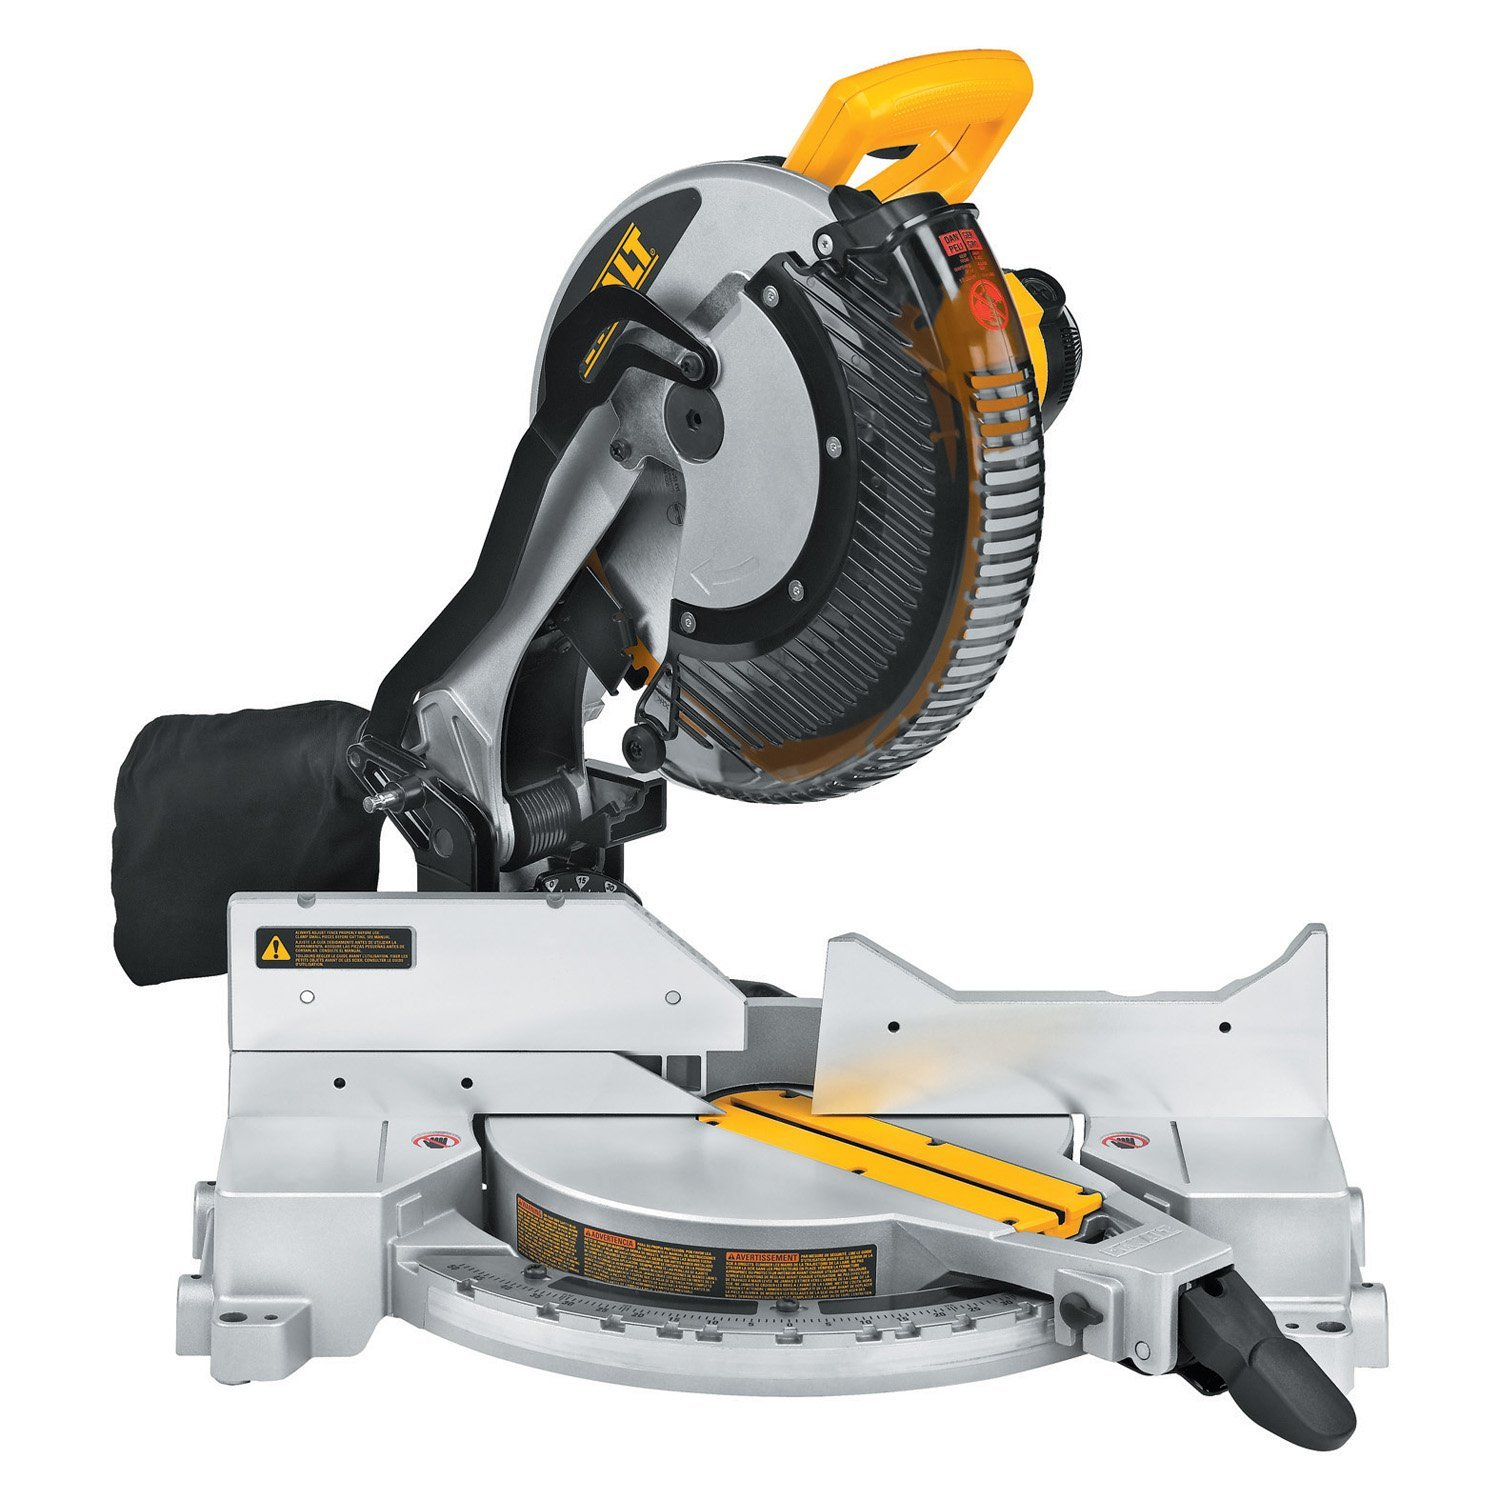 Dewalt Dw715 Miter Saw Review 2017  12inch Single Bevel